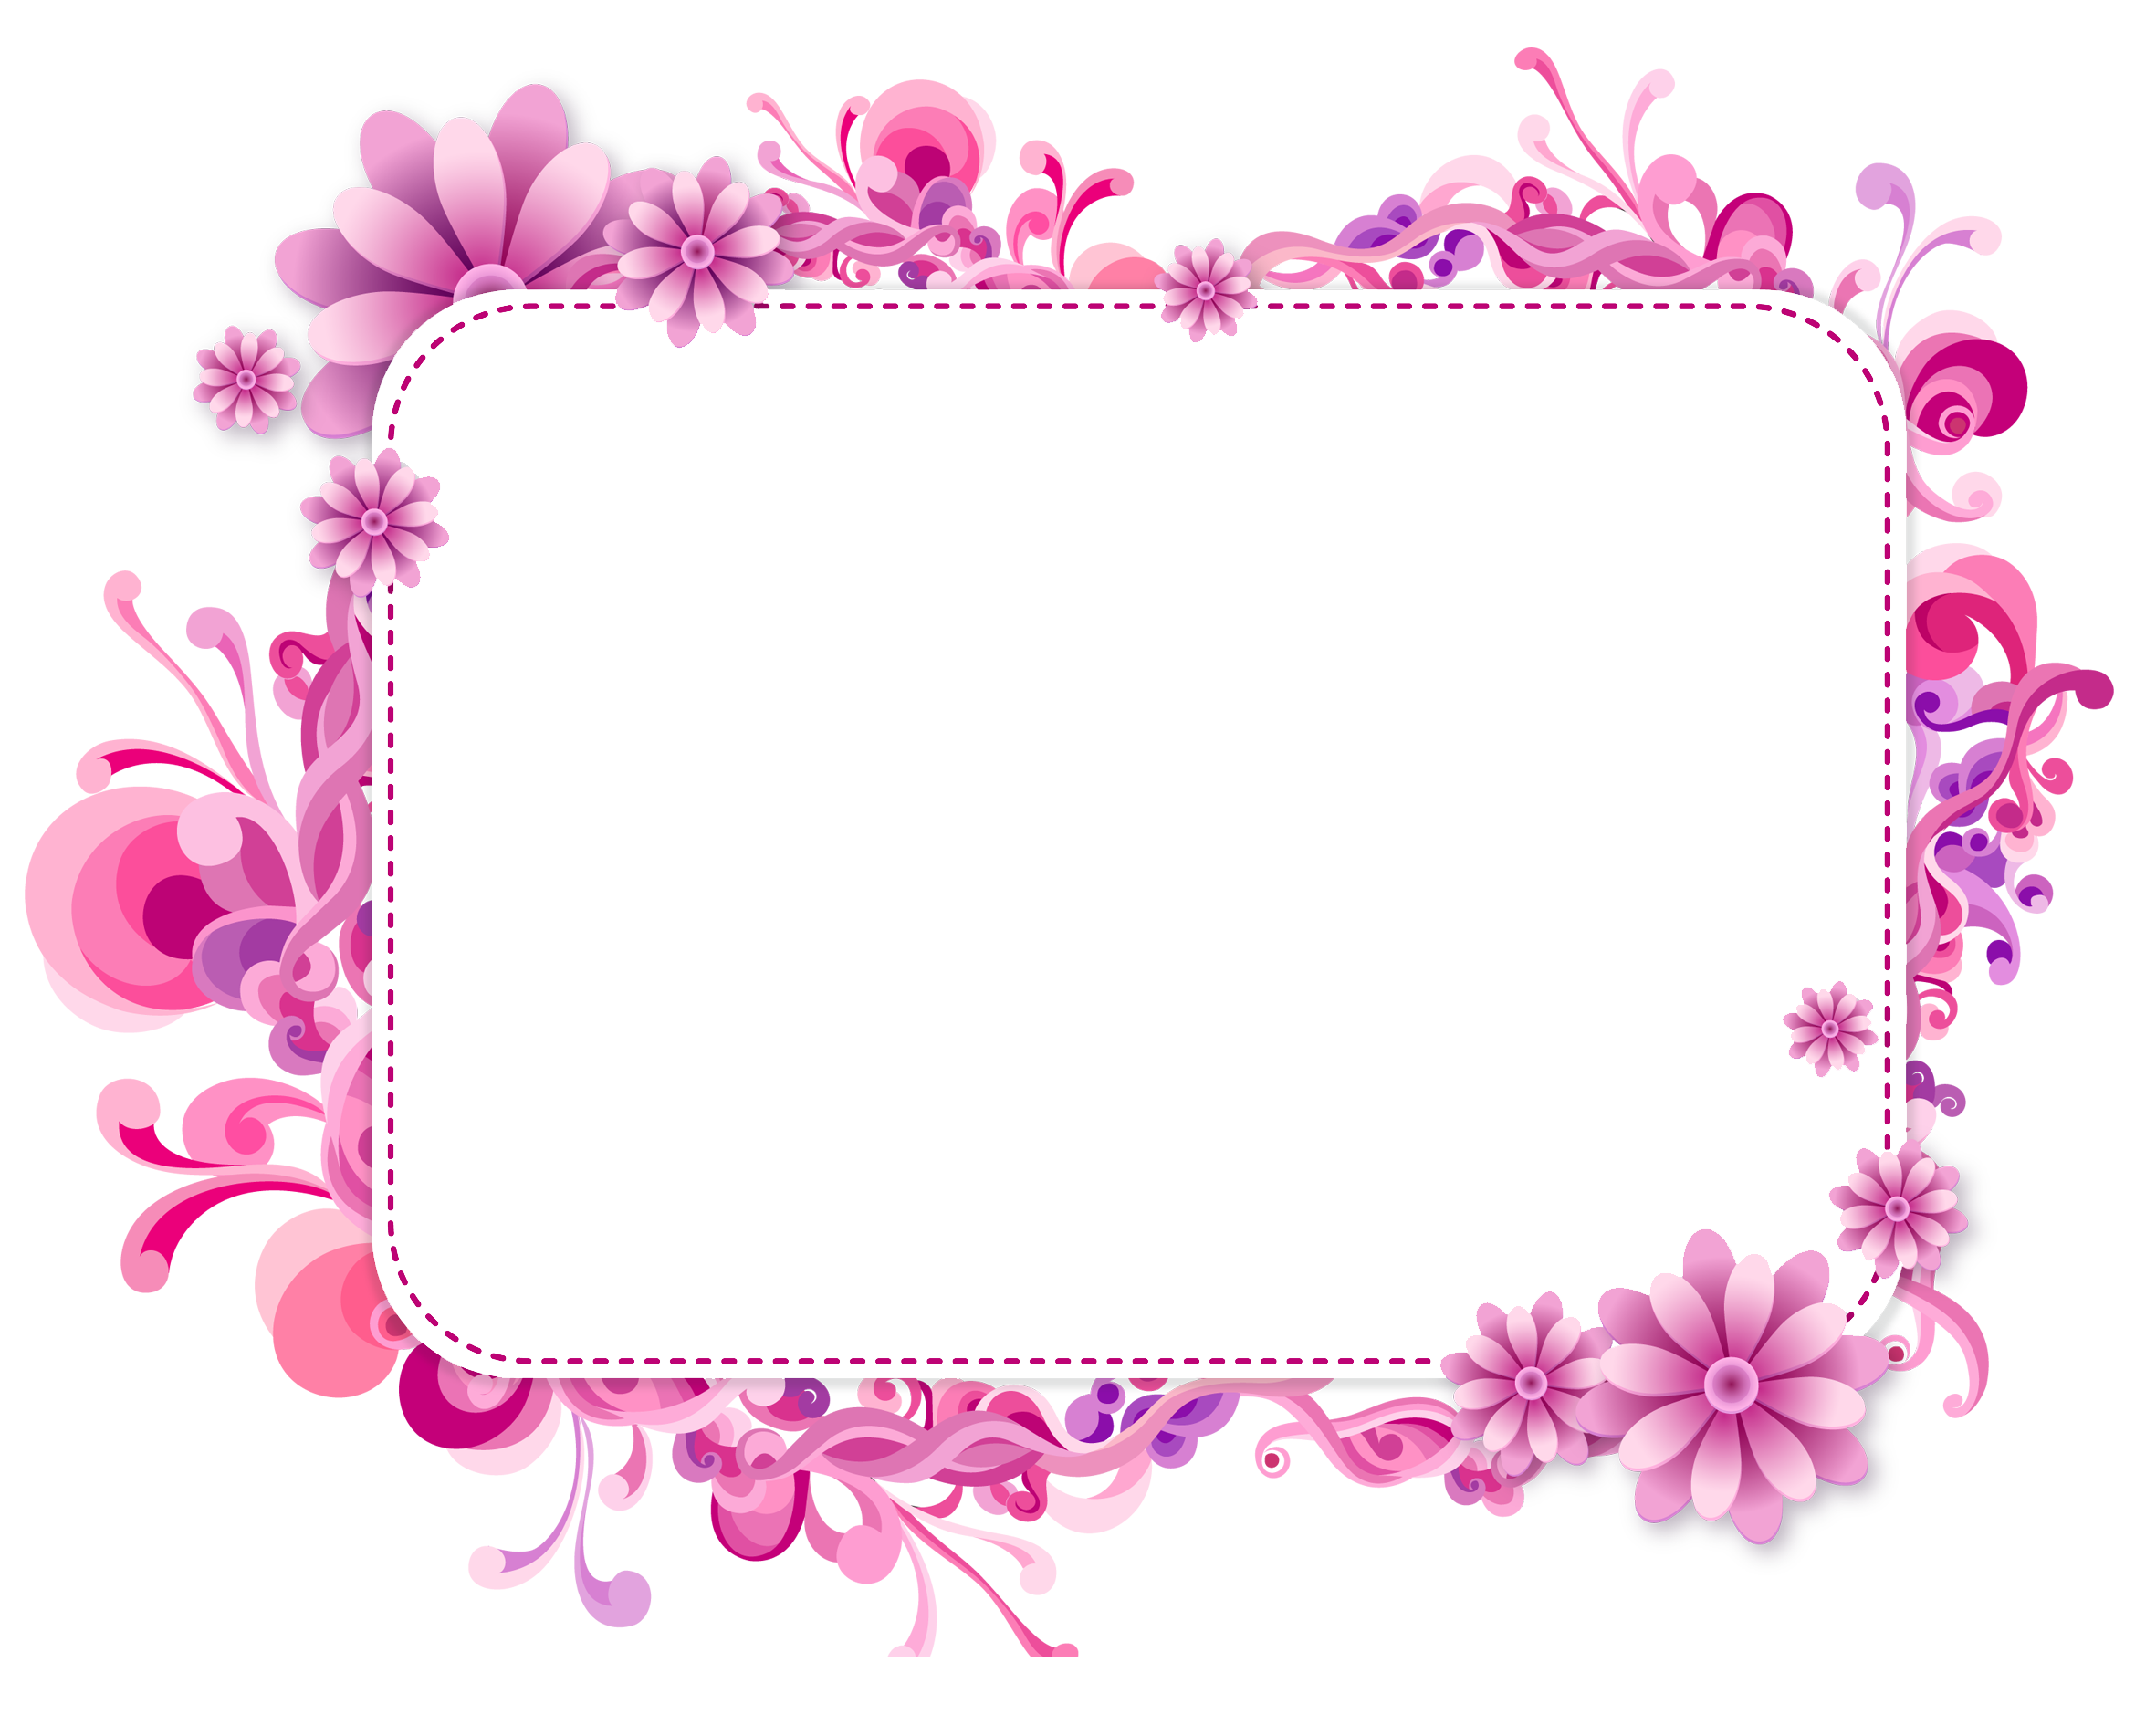 Marcos vintage floral vector png. Pink and purple frame